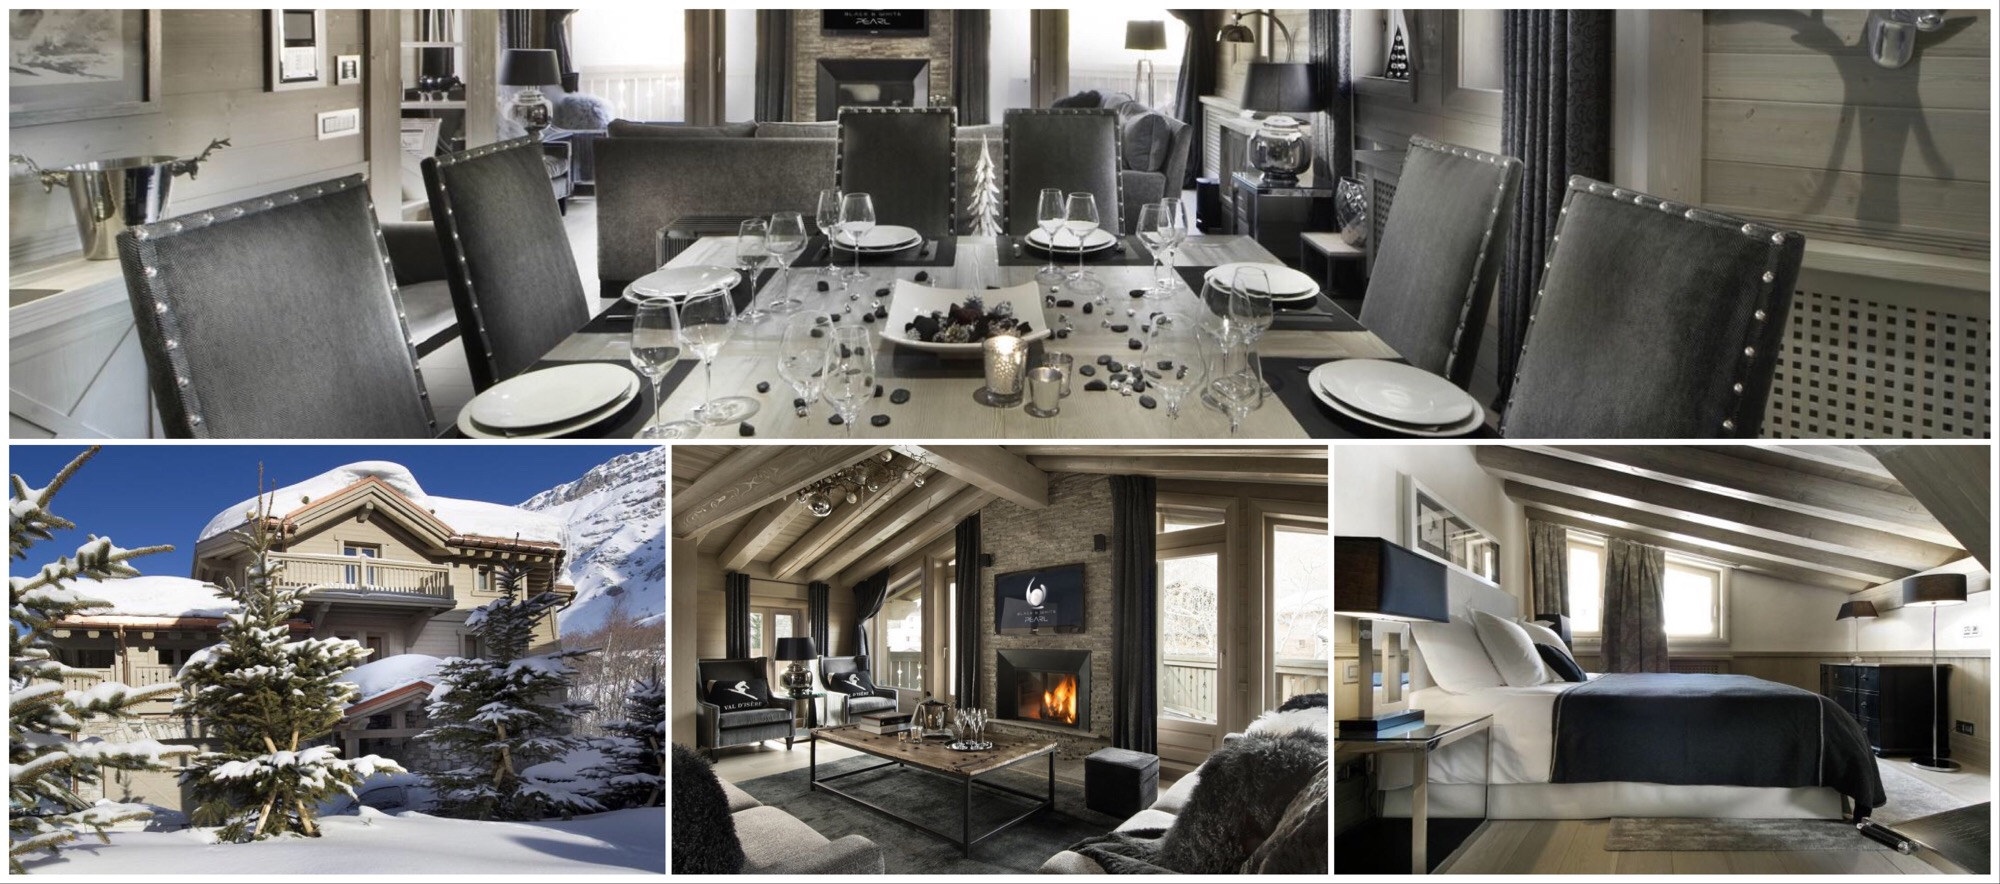 Ski chalet Bkack Pearl, Val d'Isère, Departement Savoie, dine, facade, fireplace in living room, bedroom